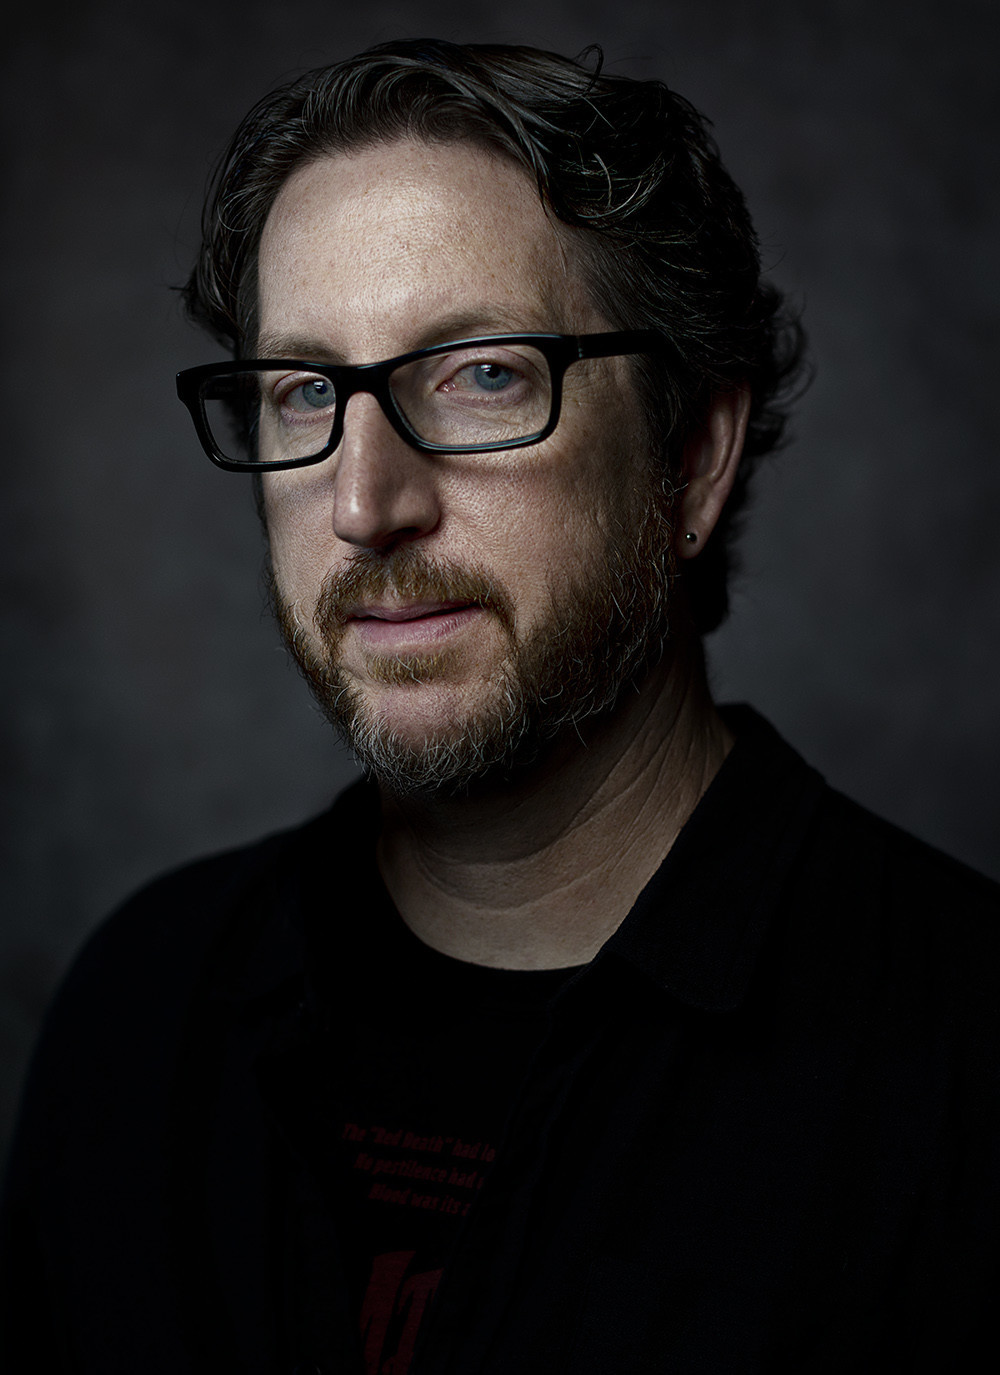 Horror writer Paul Tremblay